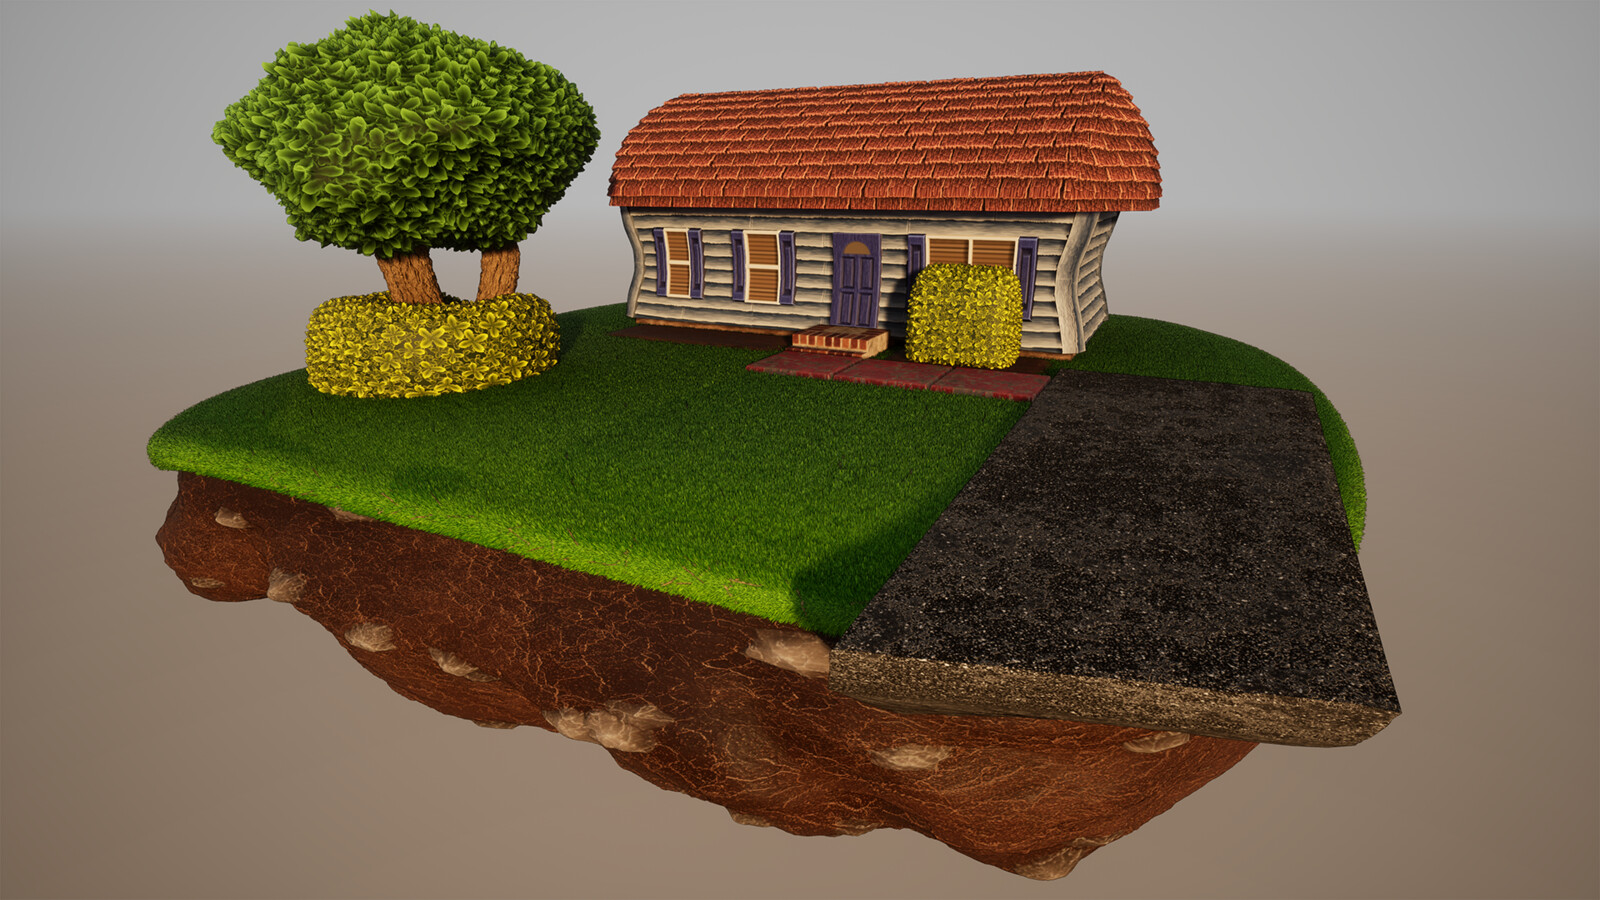 Overview Shot of the Full Diorama Rendered in Unreal Engine 4